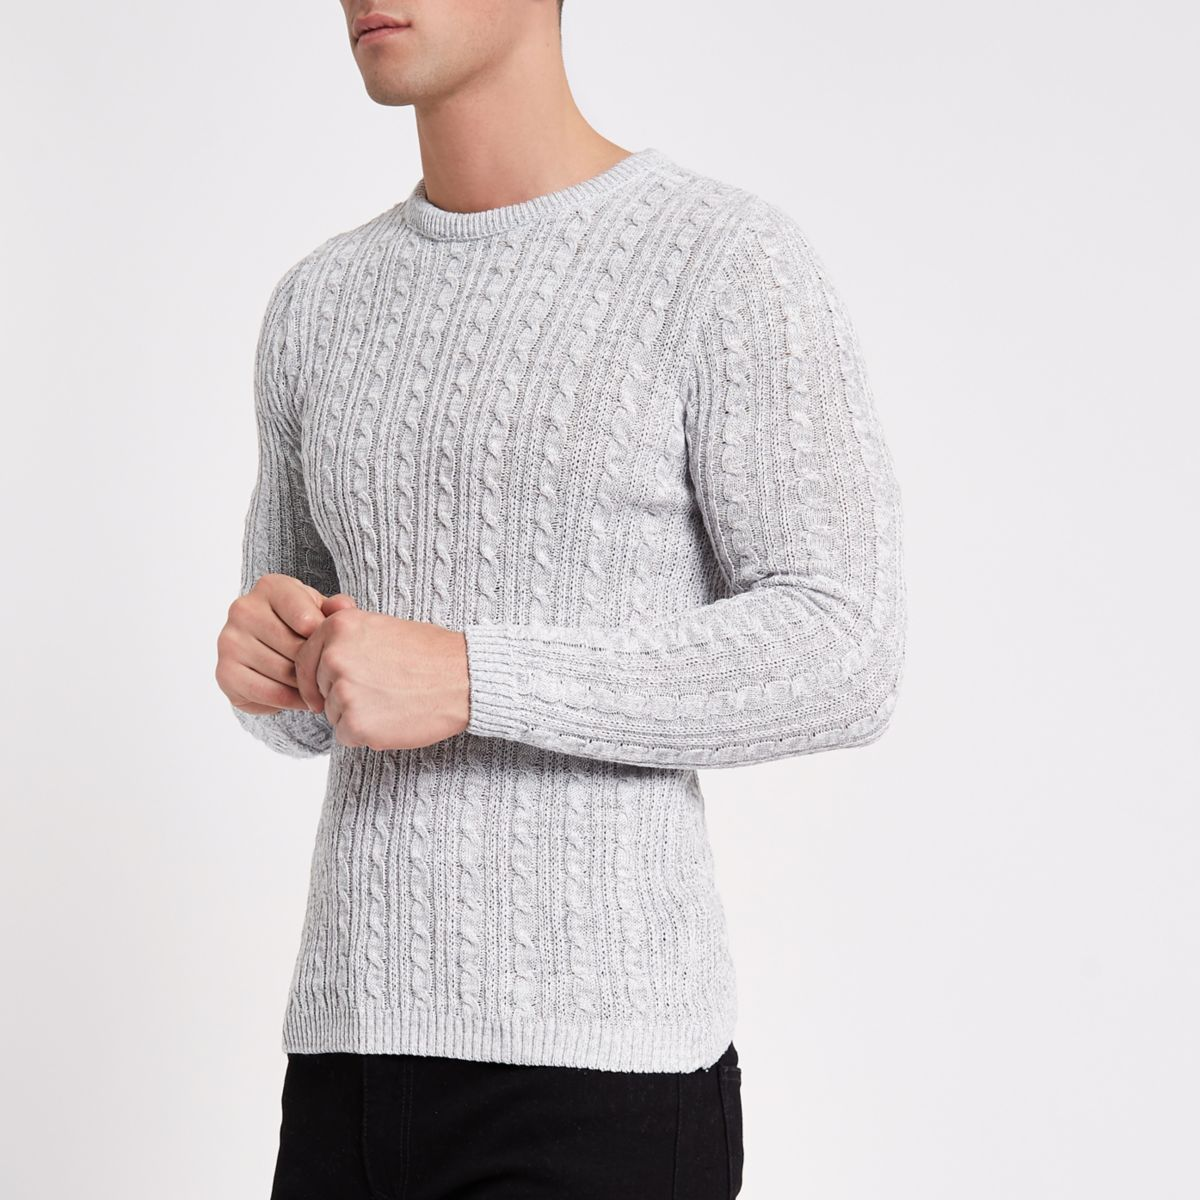 Keep cosy in this classic jumper. Constructed in light grey, design features include an open knit with cable detailing. Additional details include a crew neckline and cuffed long sleeves. Team with your favourite jeans during the chilly transitional months.5/5(3).